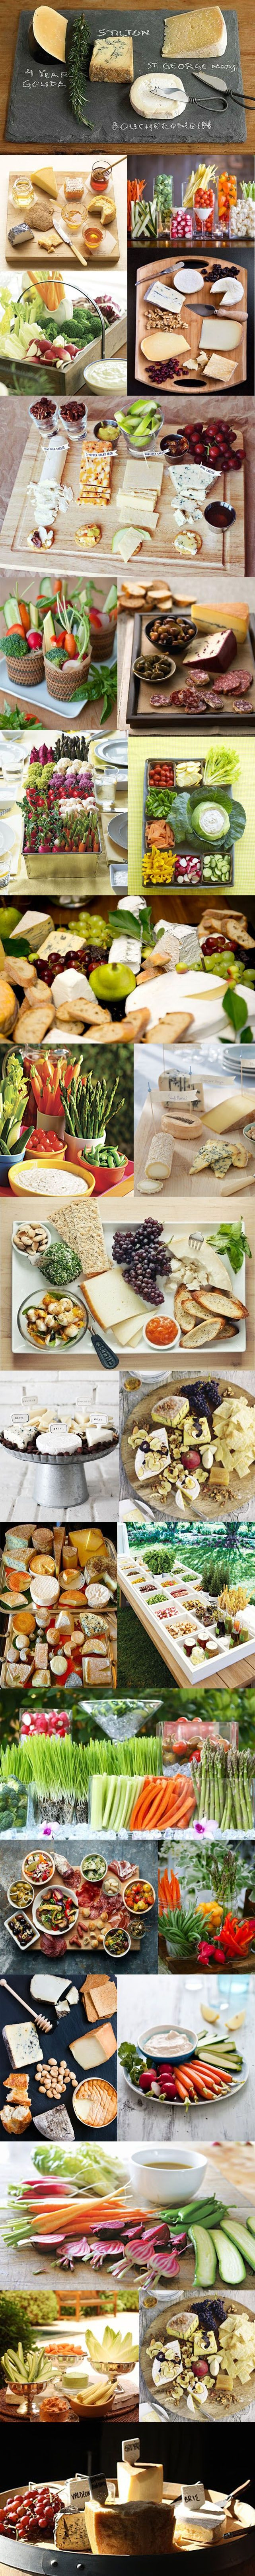 best 25+ slate plates ideas only on pinterest | grey crockery set